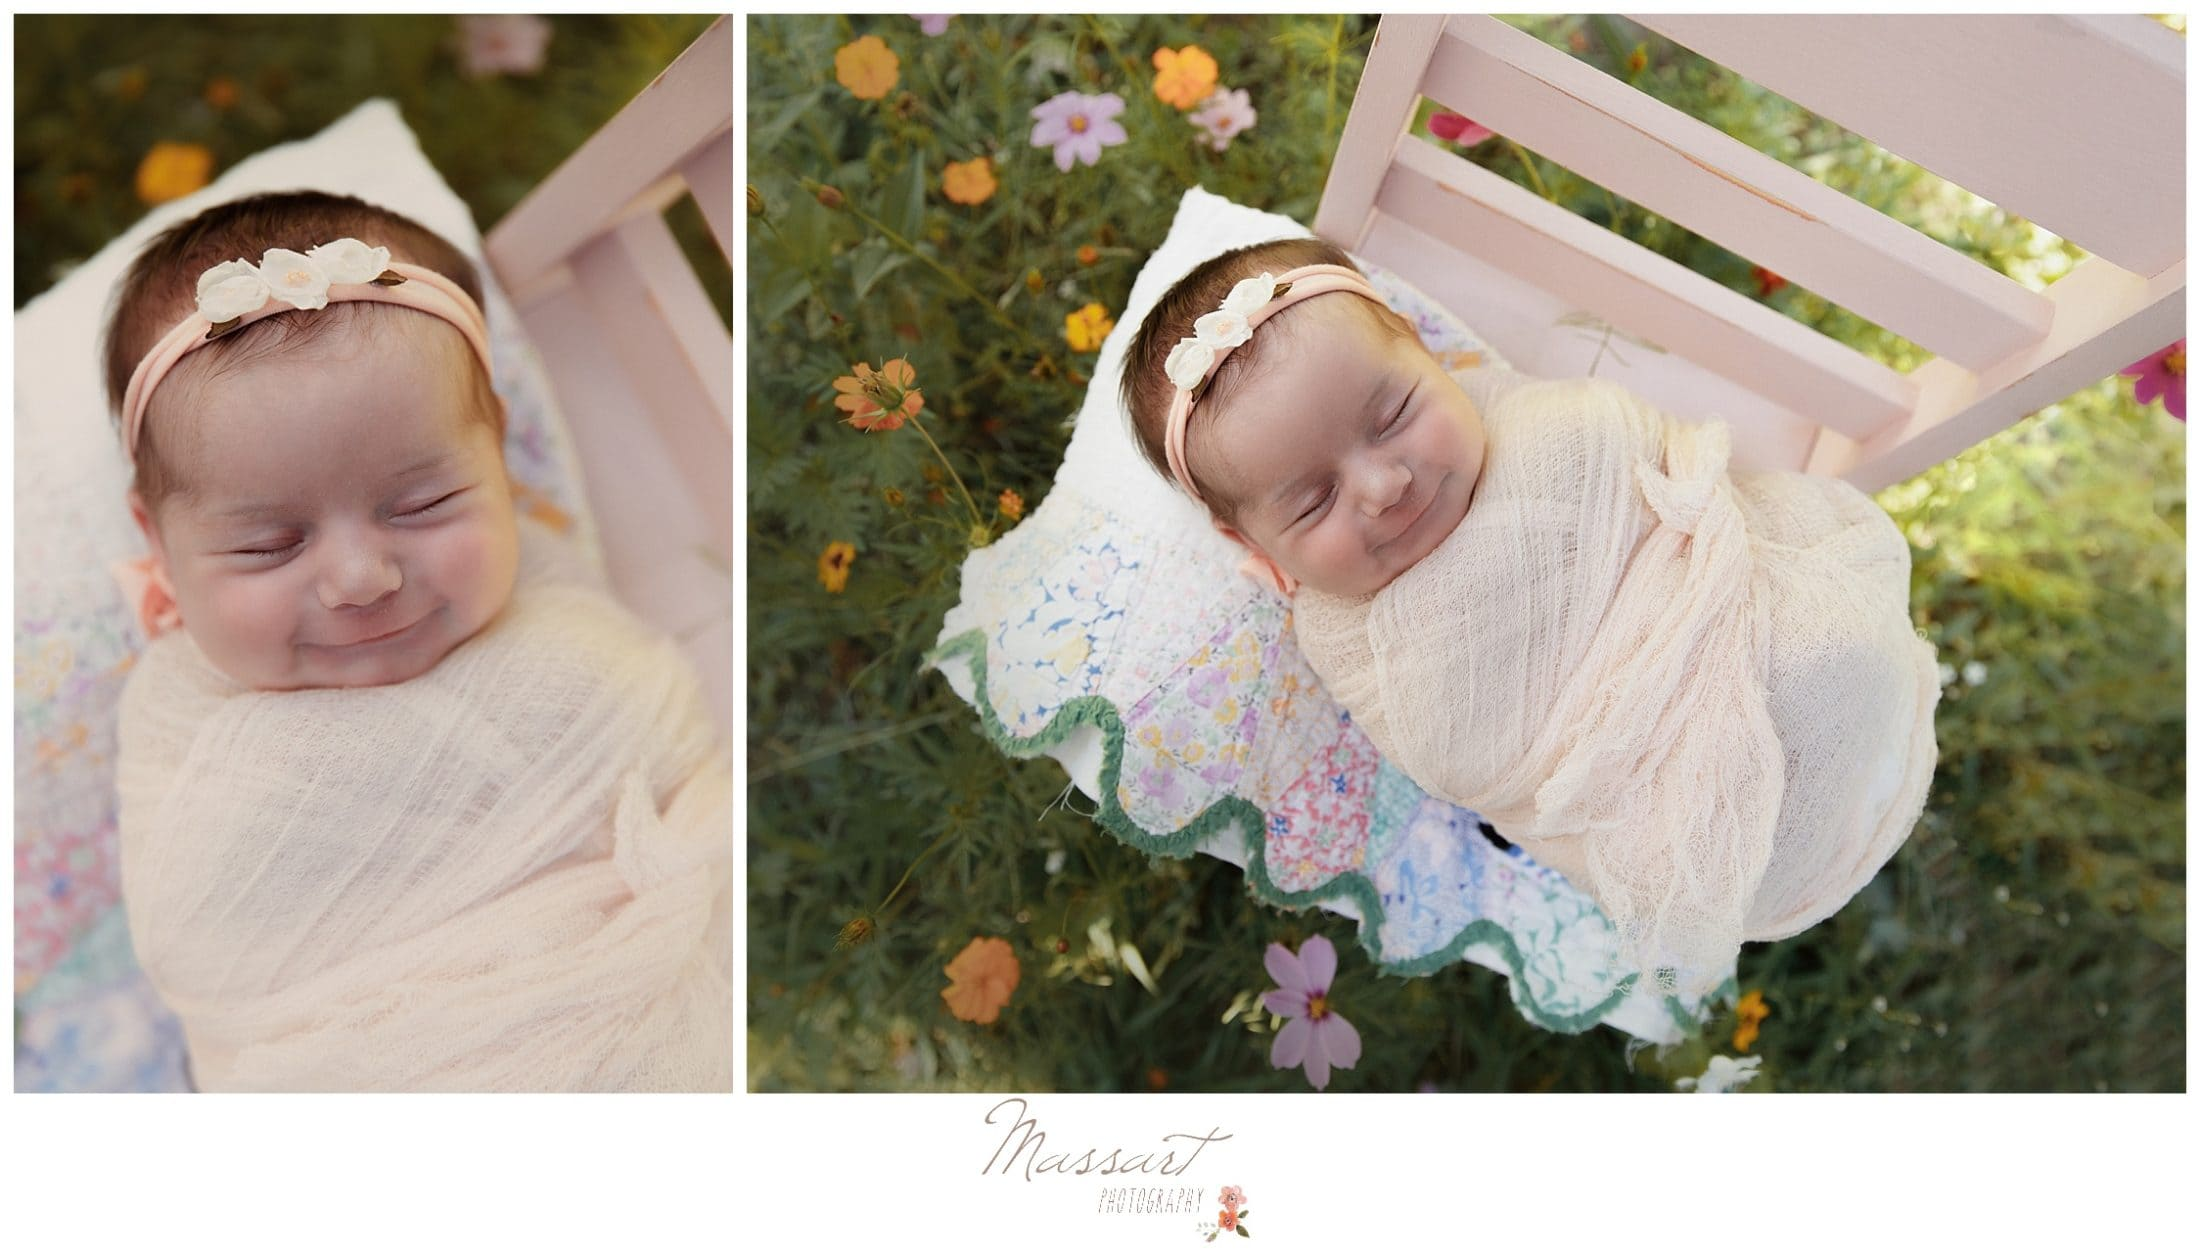 Baby girl lays on chair in colorful garden outdoors during newborn session photographed by Massart Photography RI